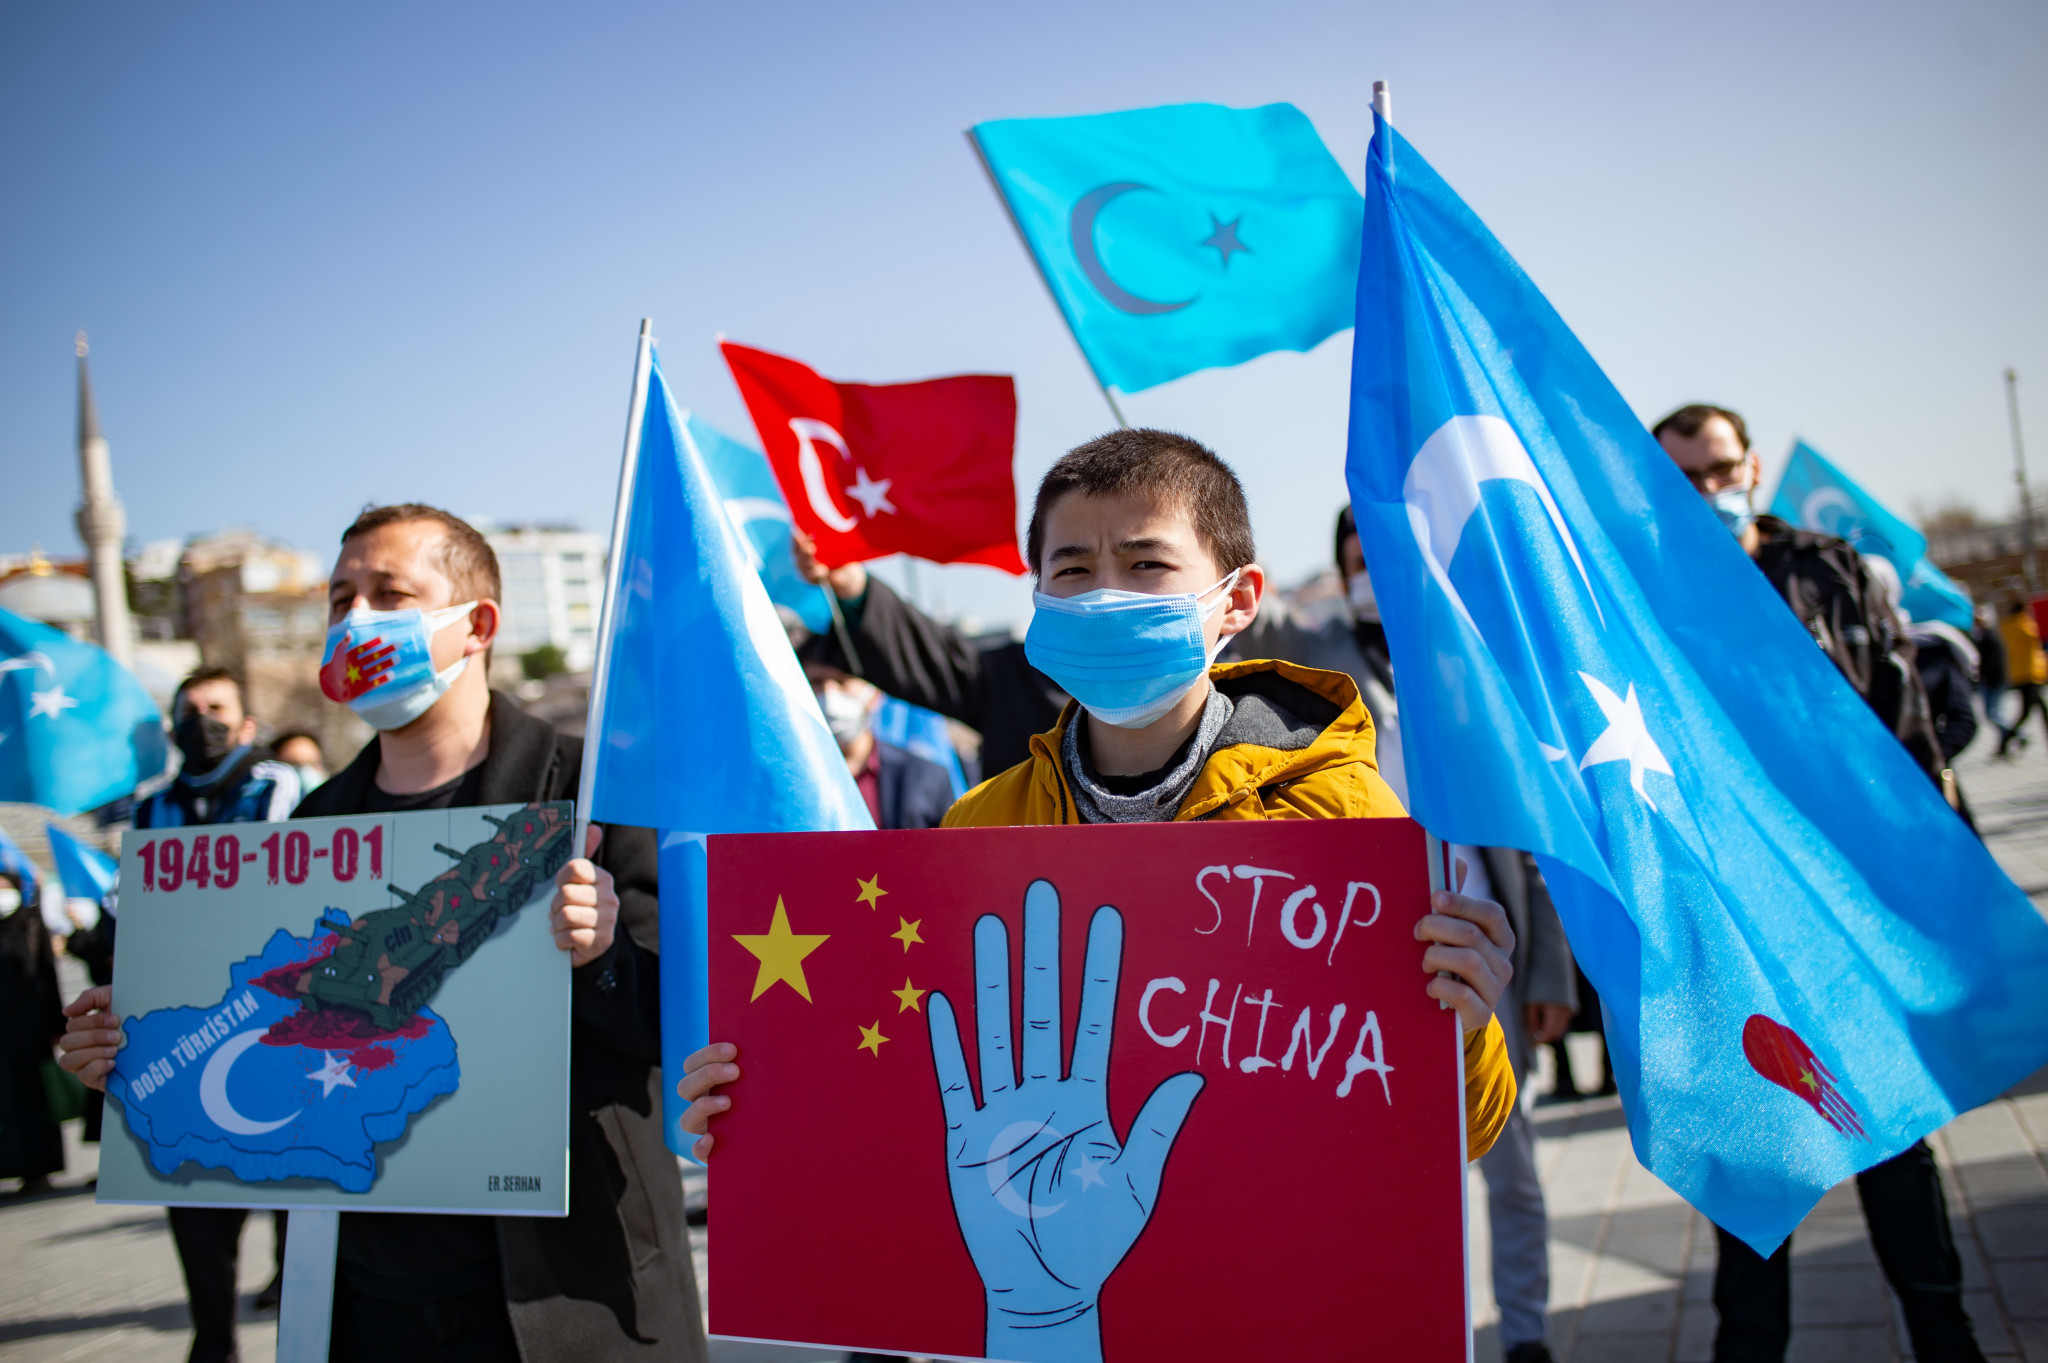 Chinese officials sanctioned over alleged human rights abuses of Uyghur Muslims as Beijing 2022 approaches